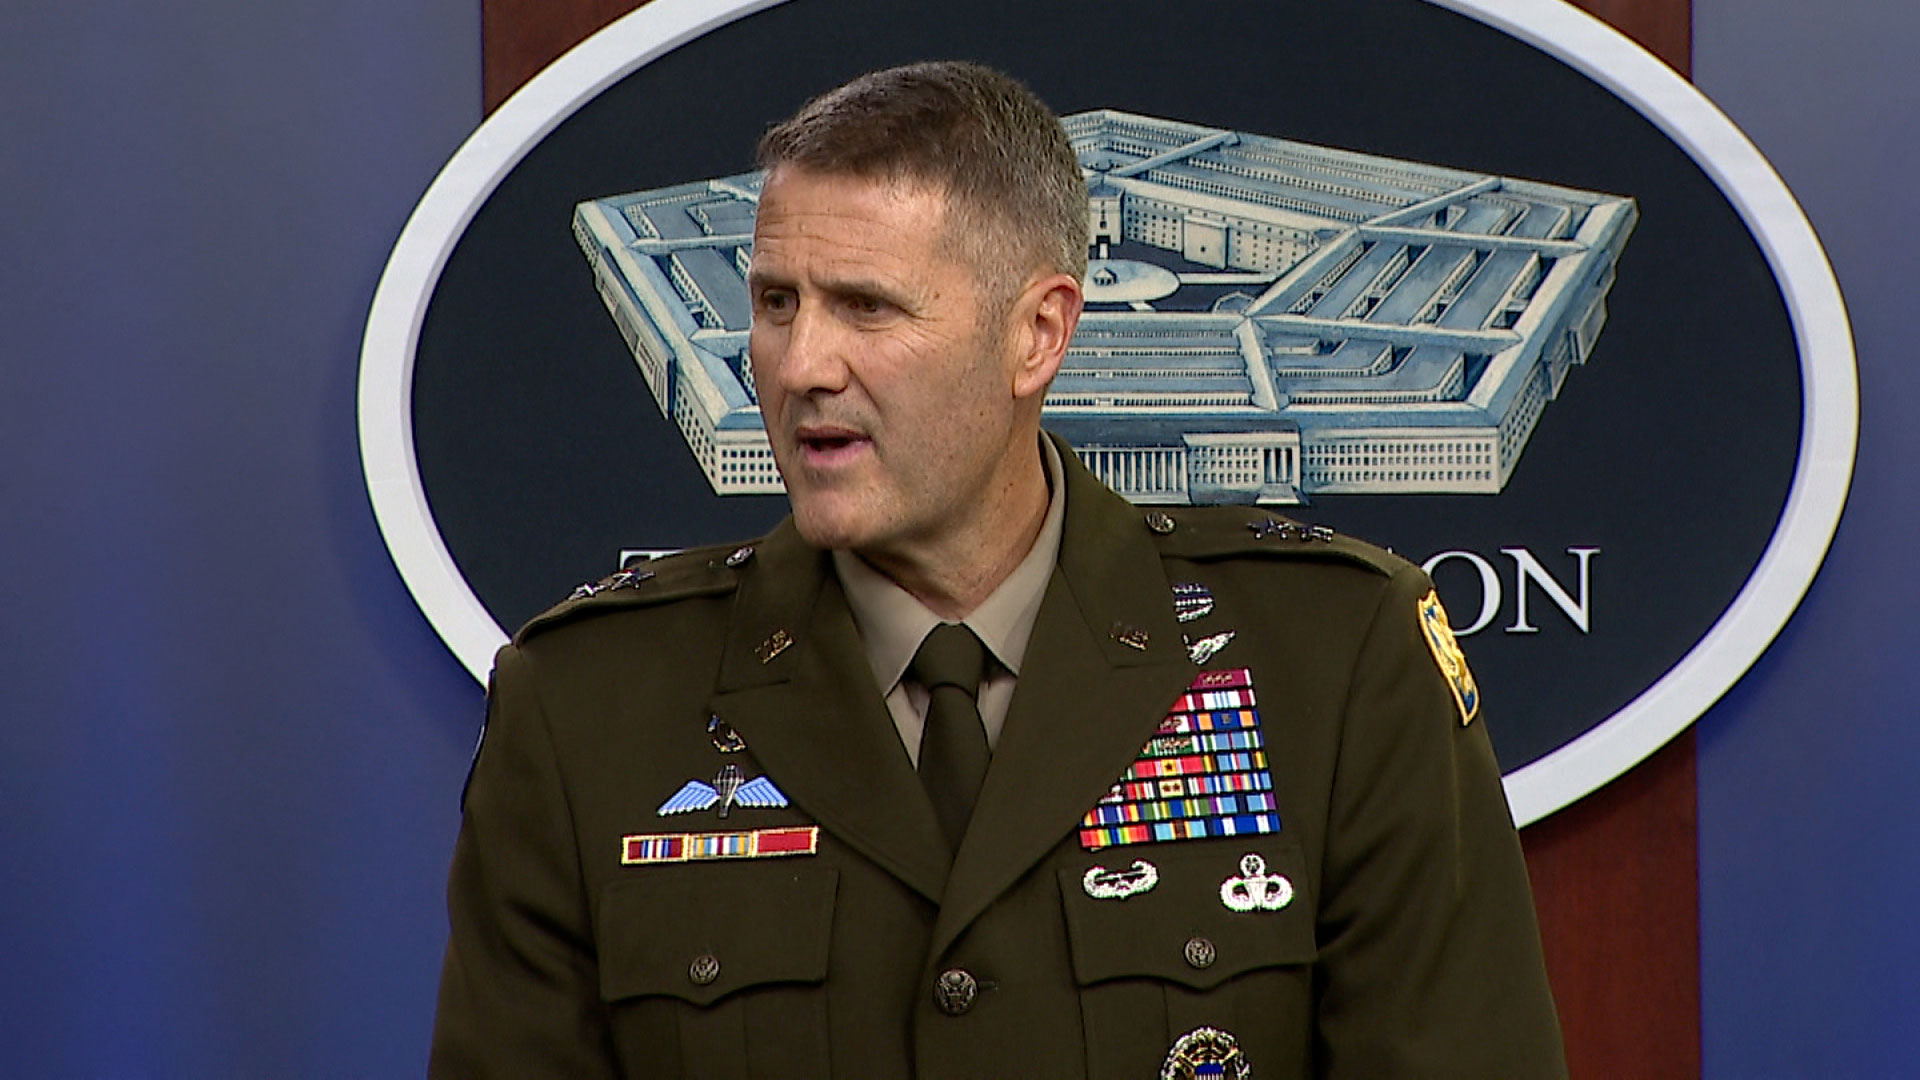 """Army Maj. Gen. William """"Hank"""" Taylor, Joint Staff deputy director for regional operations, speaks at a briefing in Washington, DC, on August 20, 2021."""